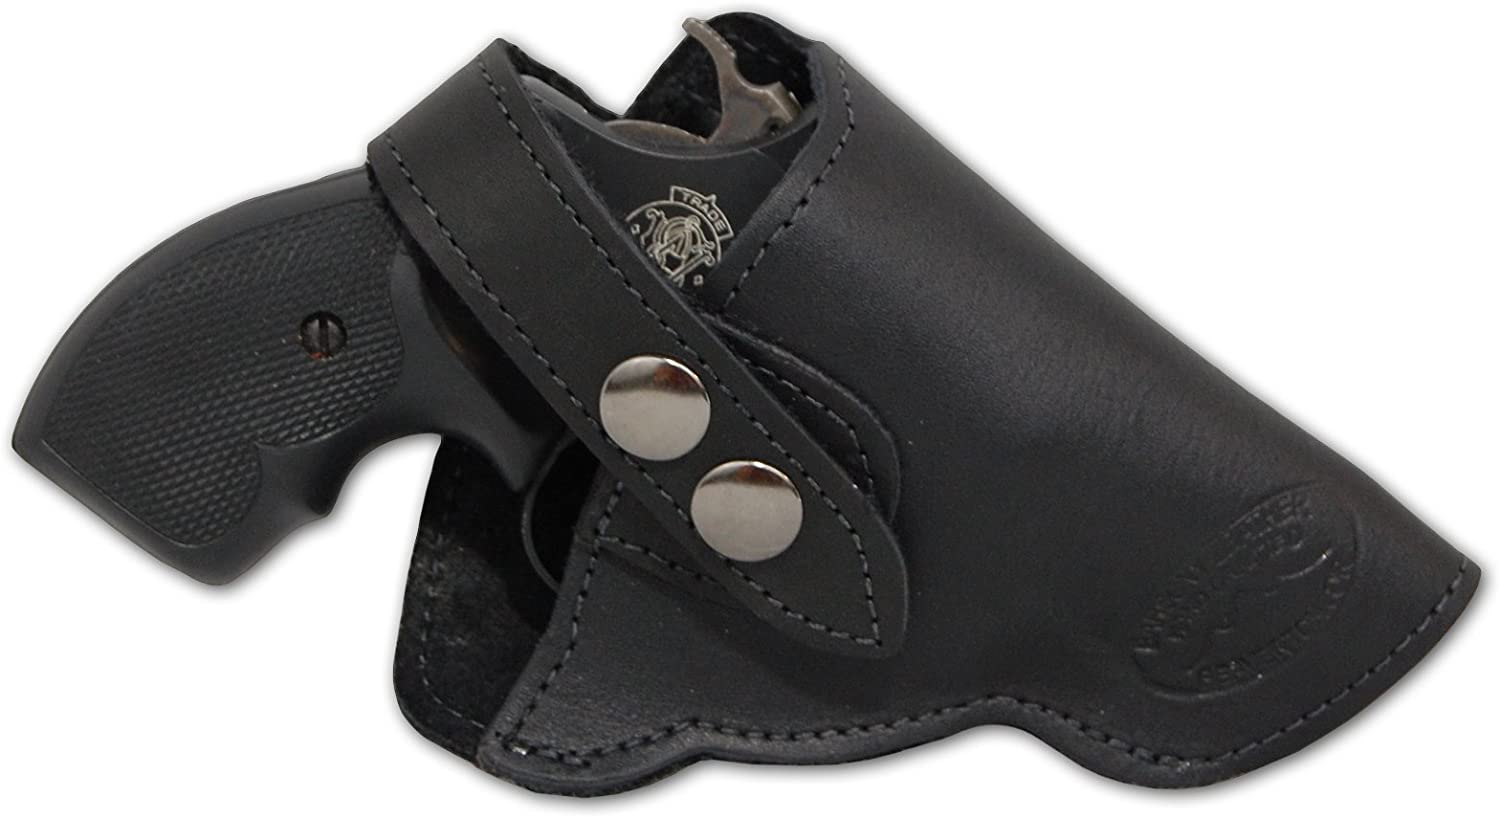 Barsony New Black Leather OWB Holster Surprise price for 2